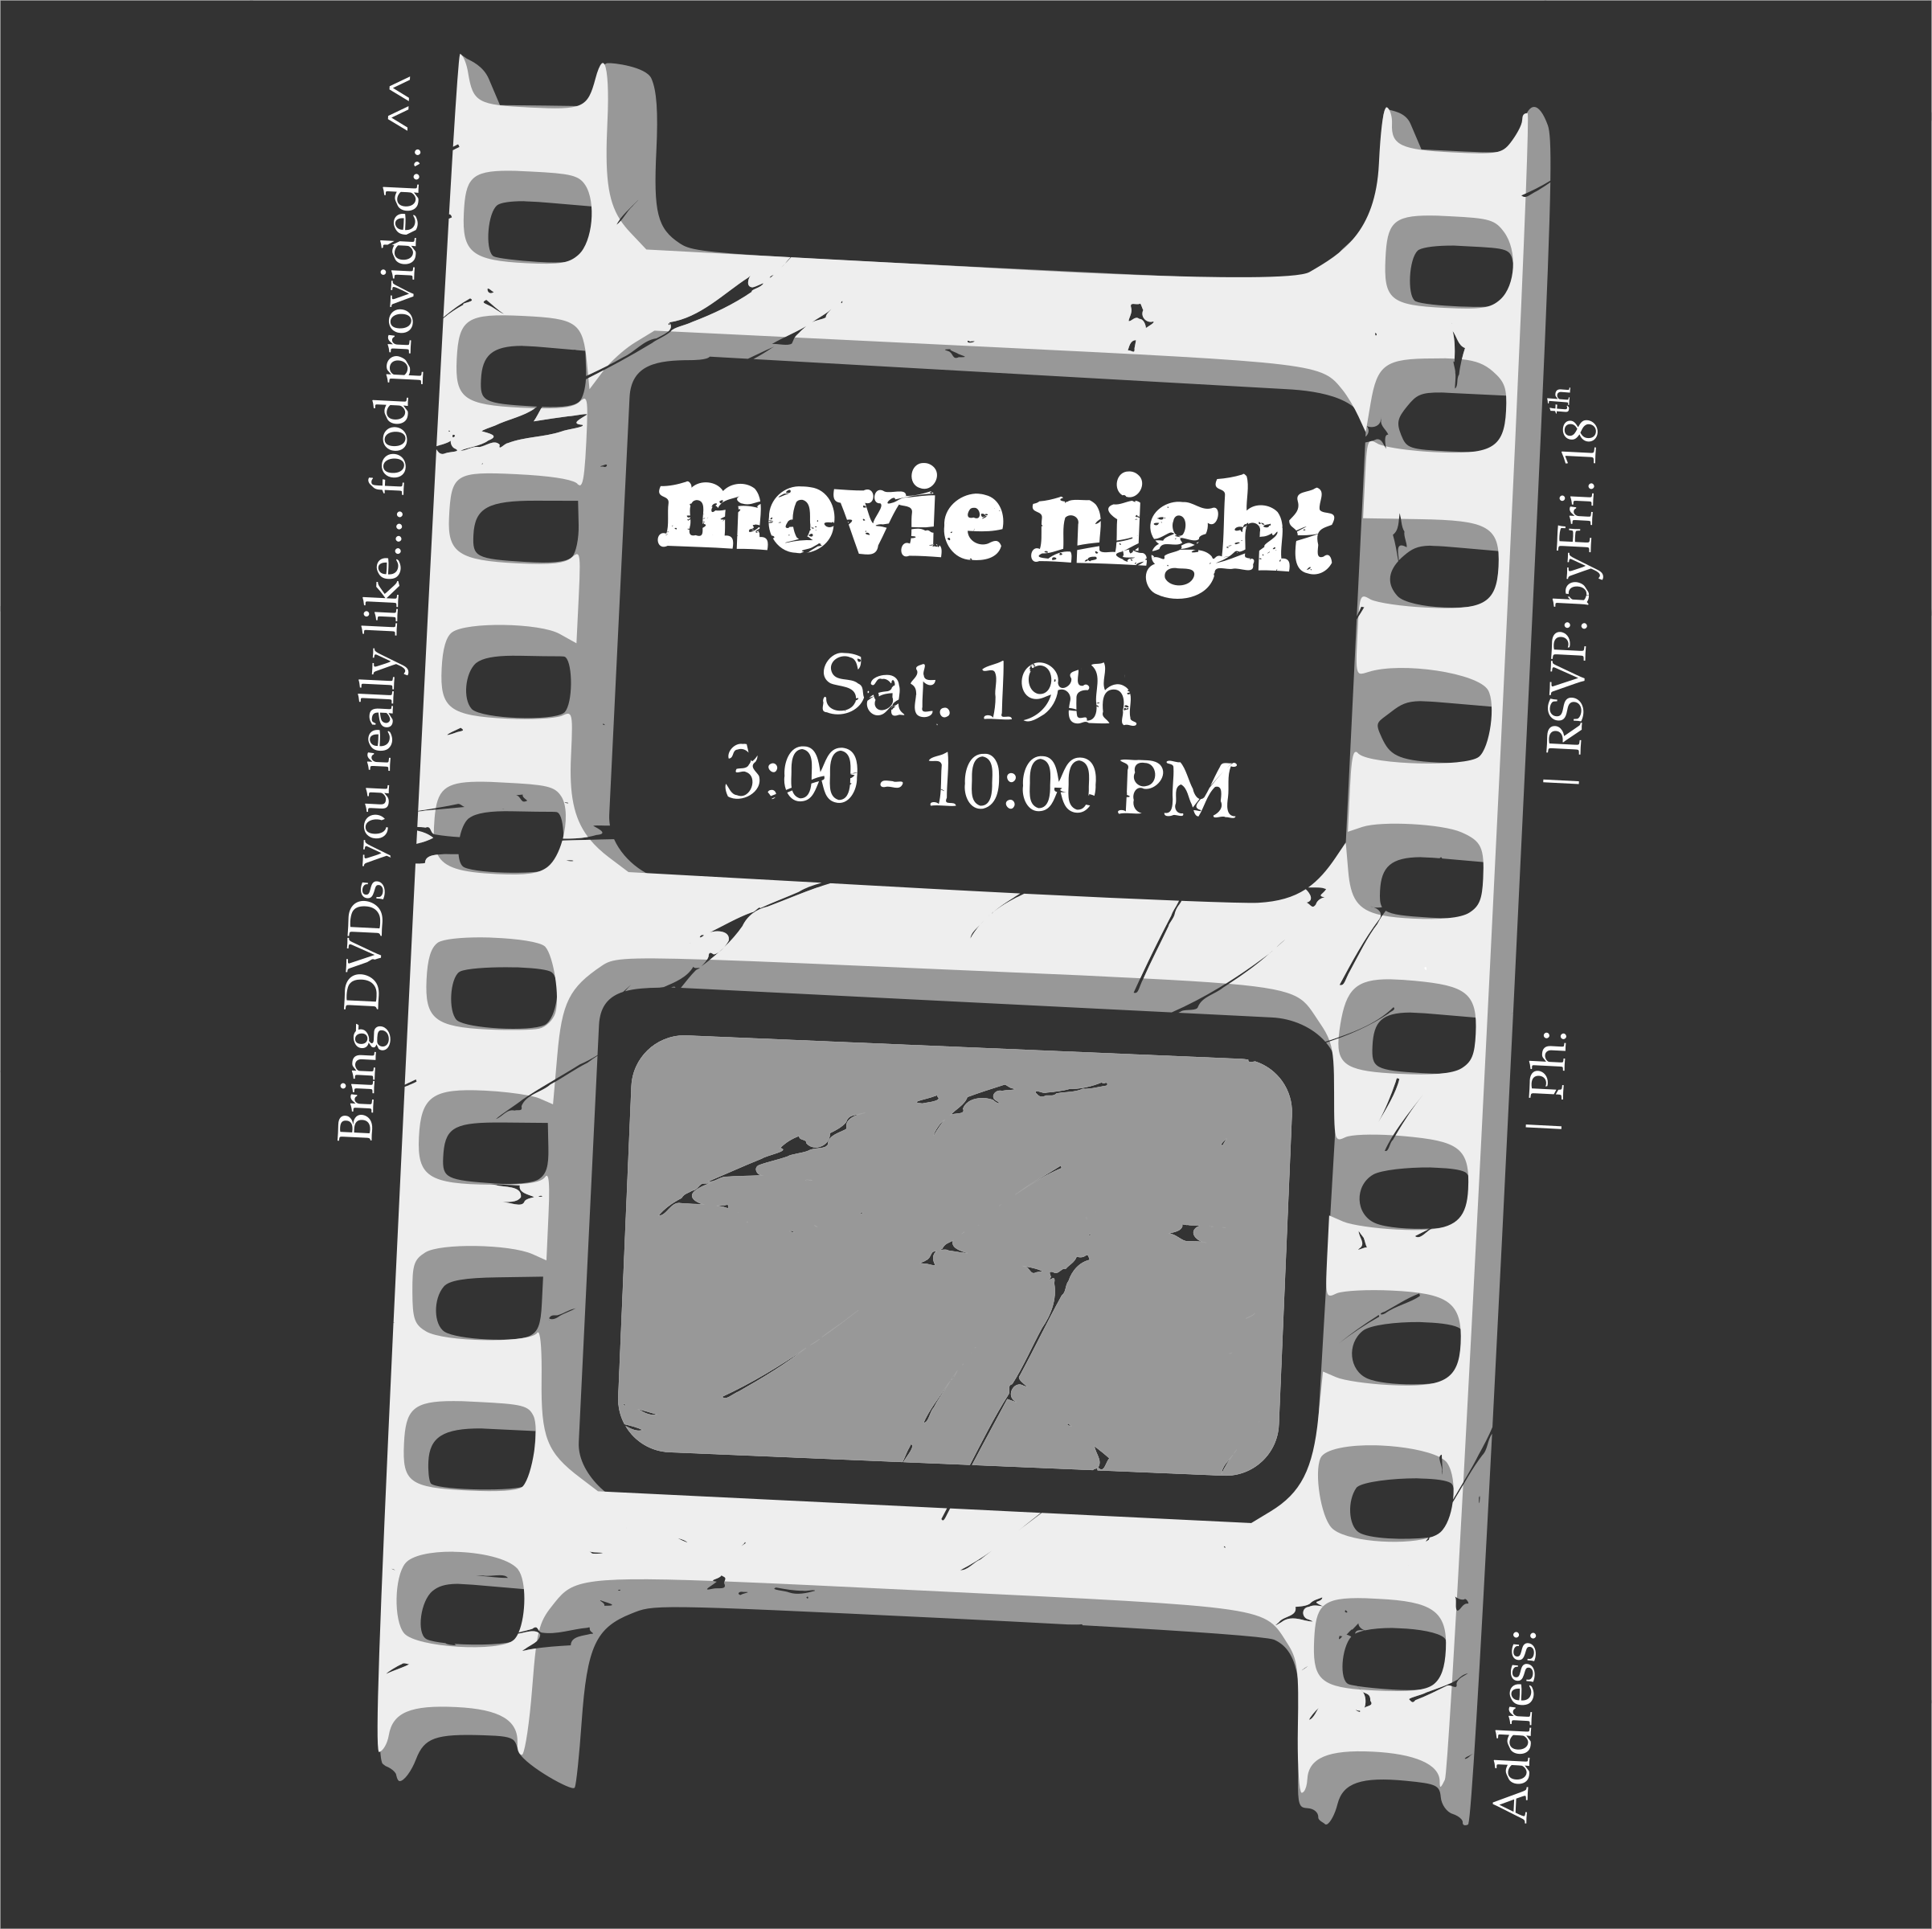 Movie night ticket by klepas